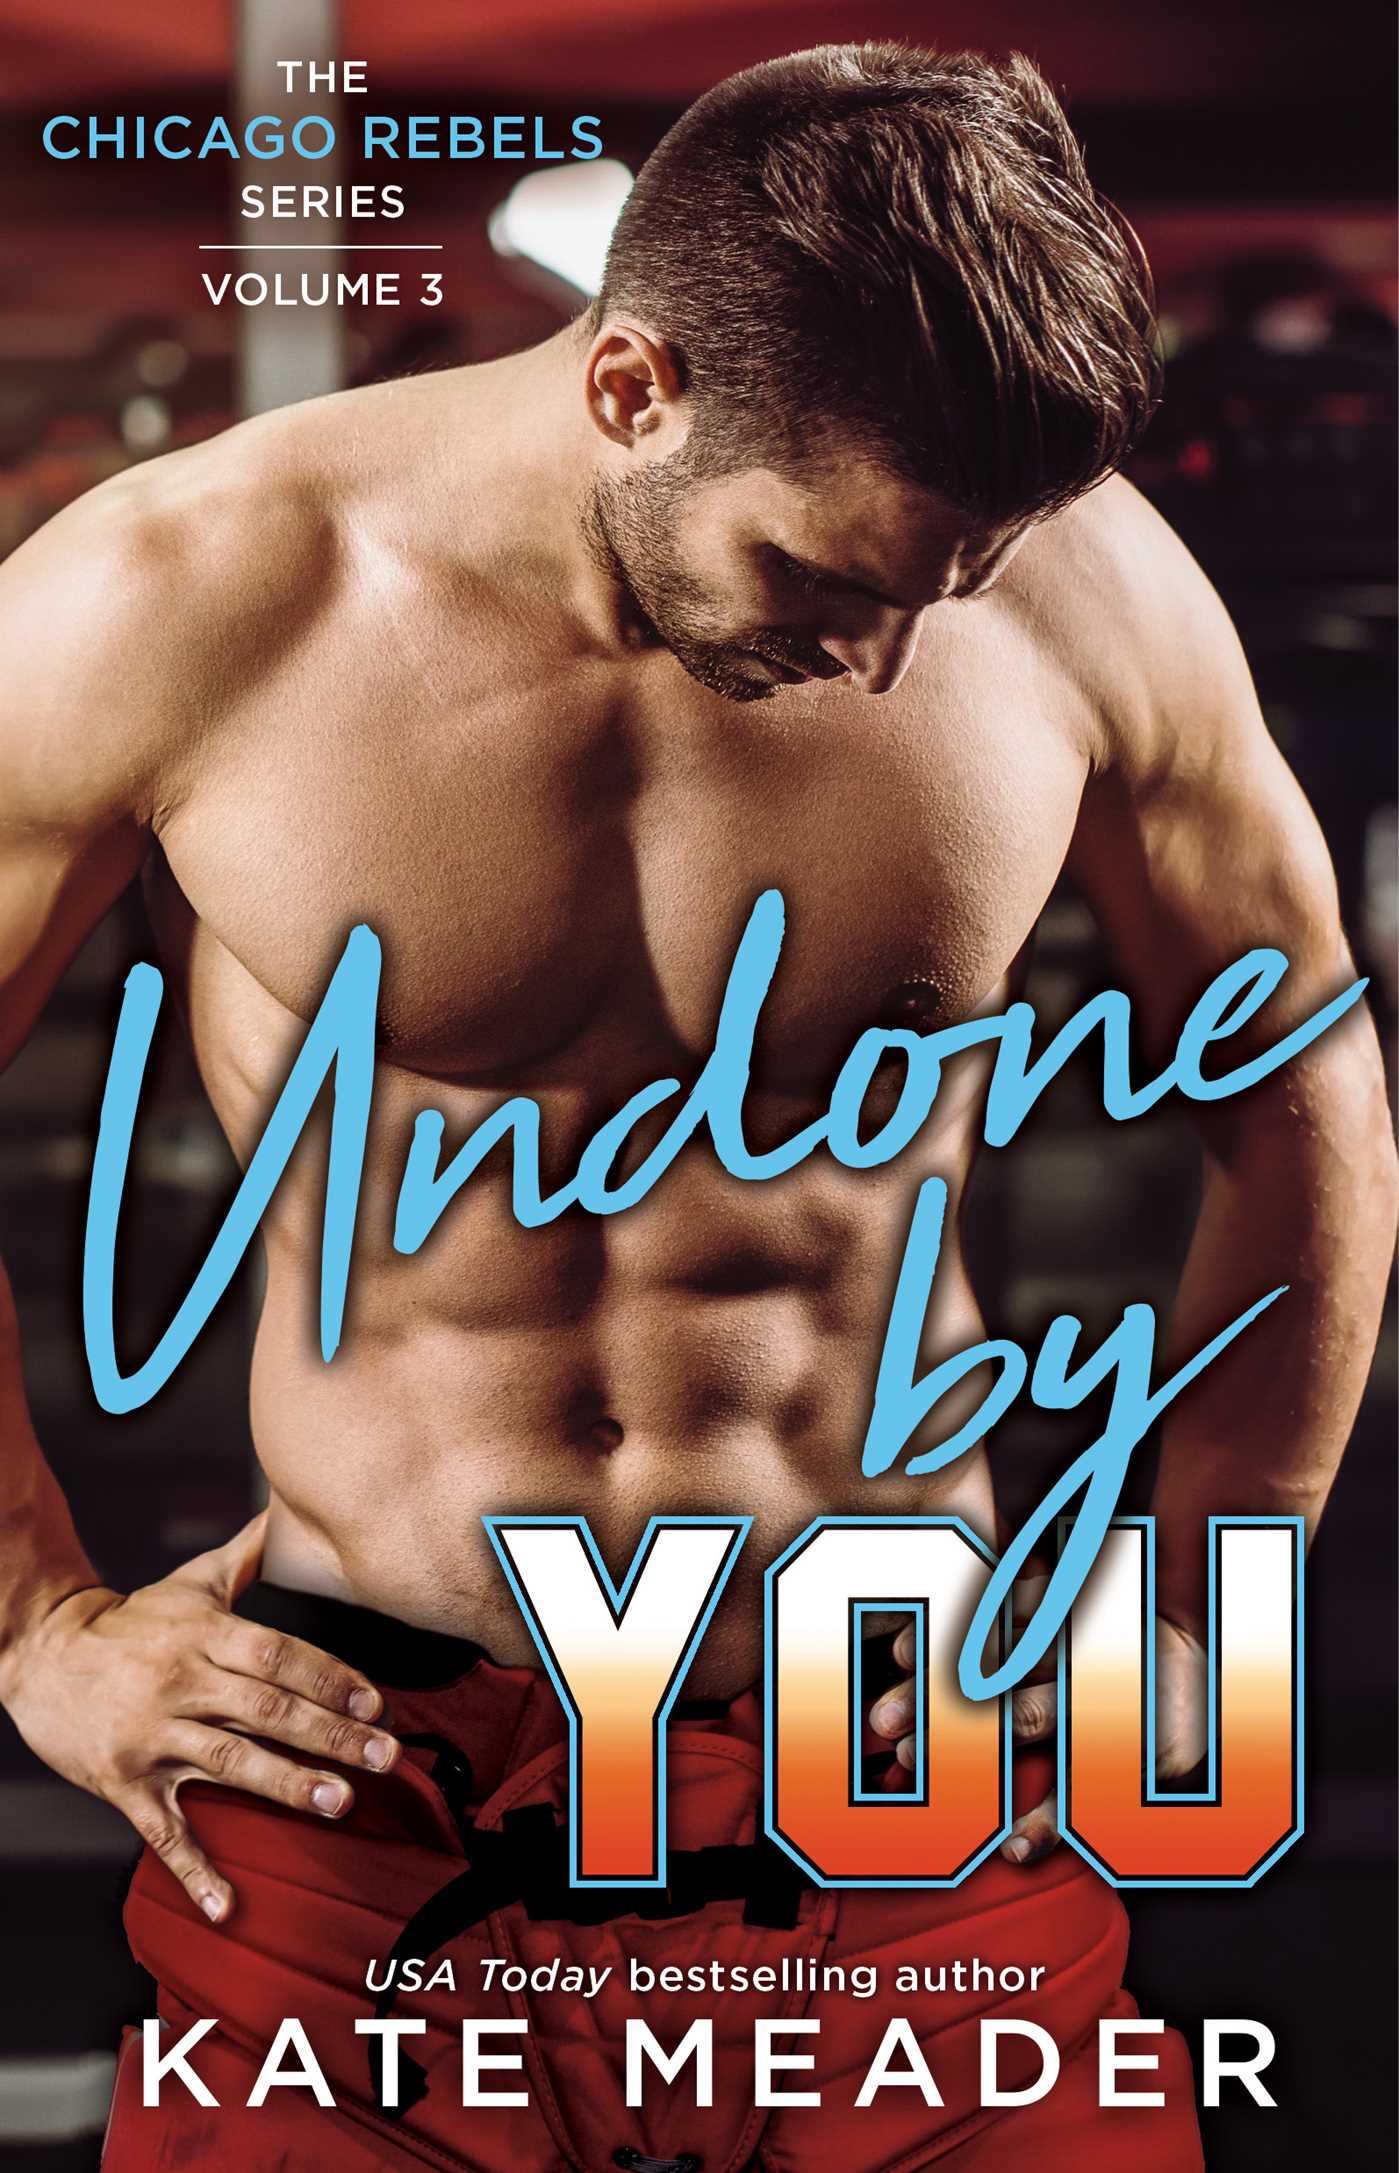 Undone by you 9781501182907 hr